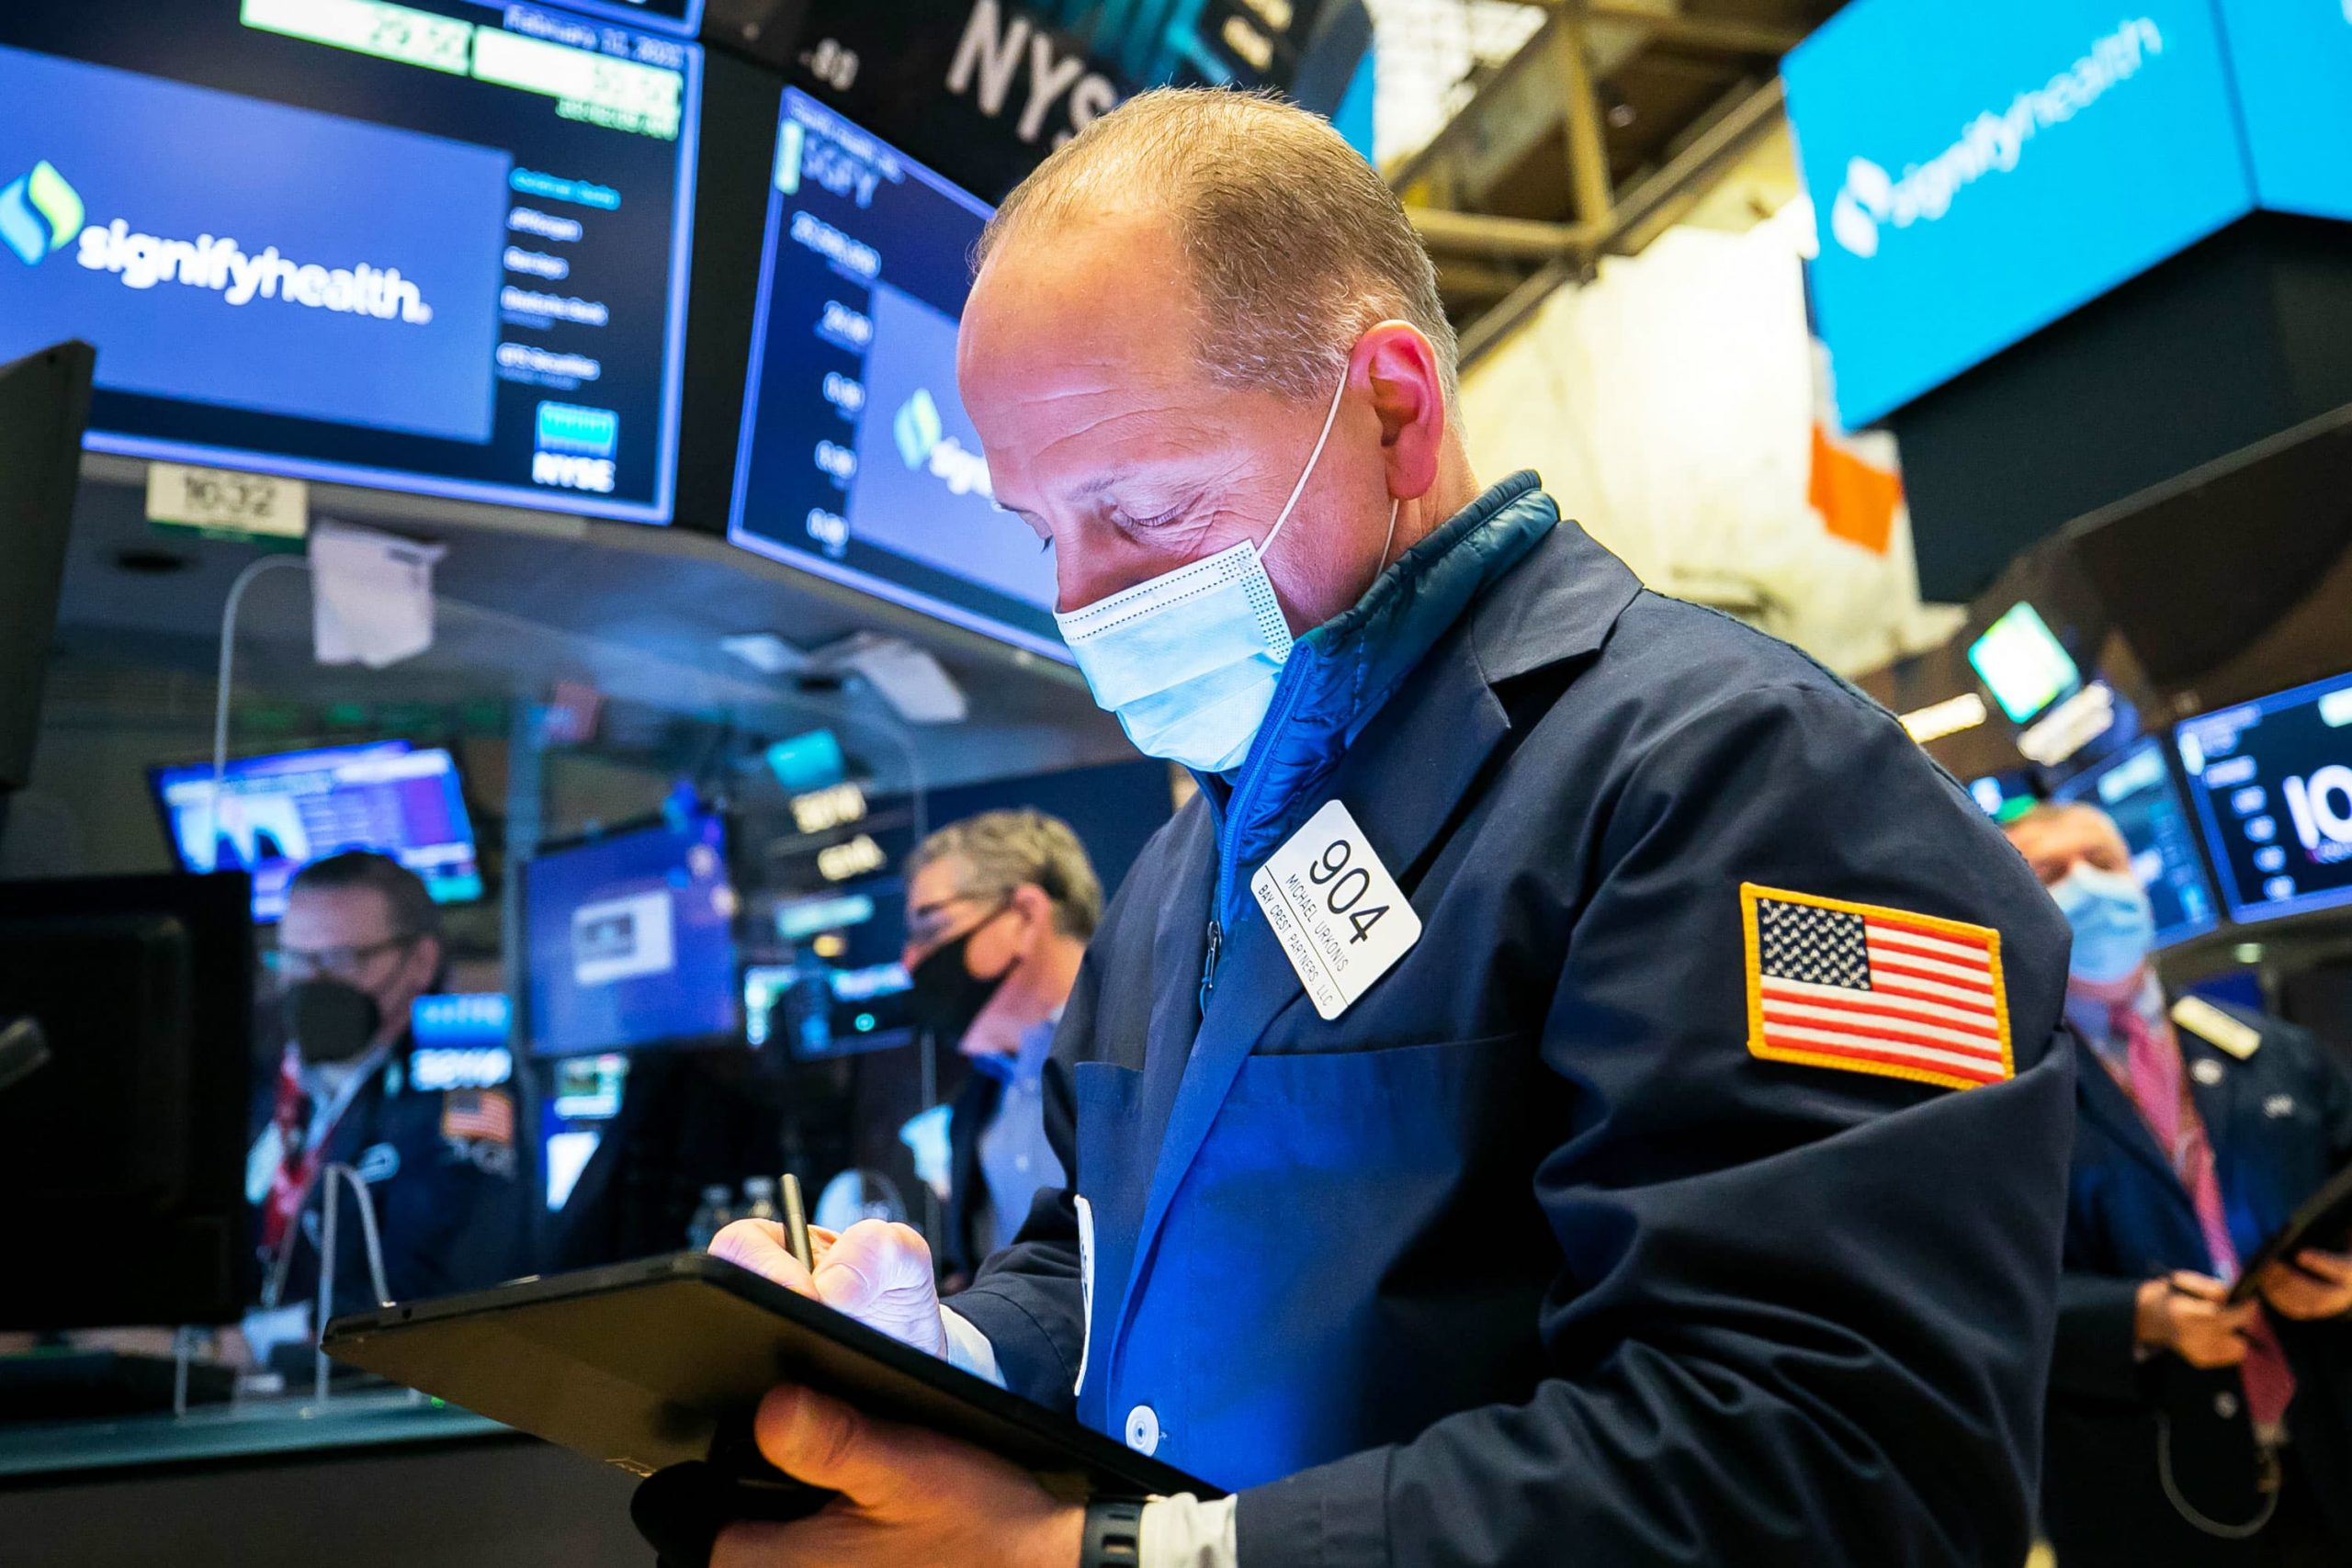 stock-futures-are-flat-in-overnight-trading-after-sp-500-ekes-out-record-close